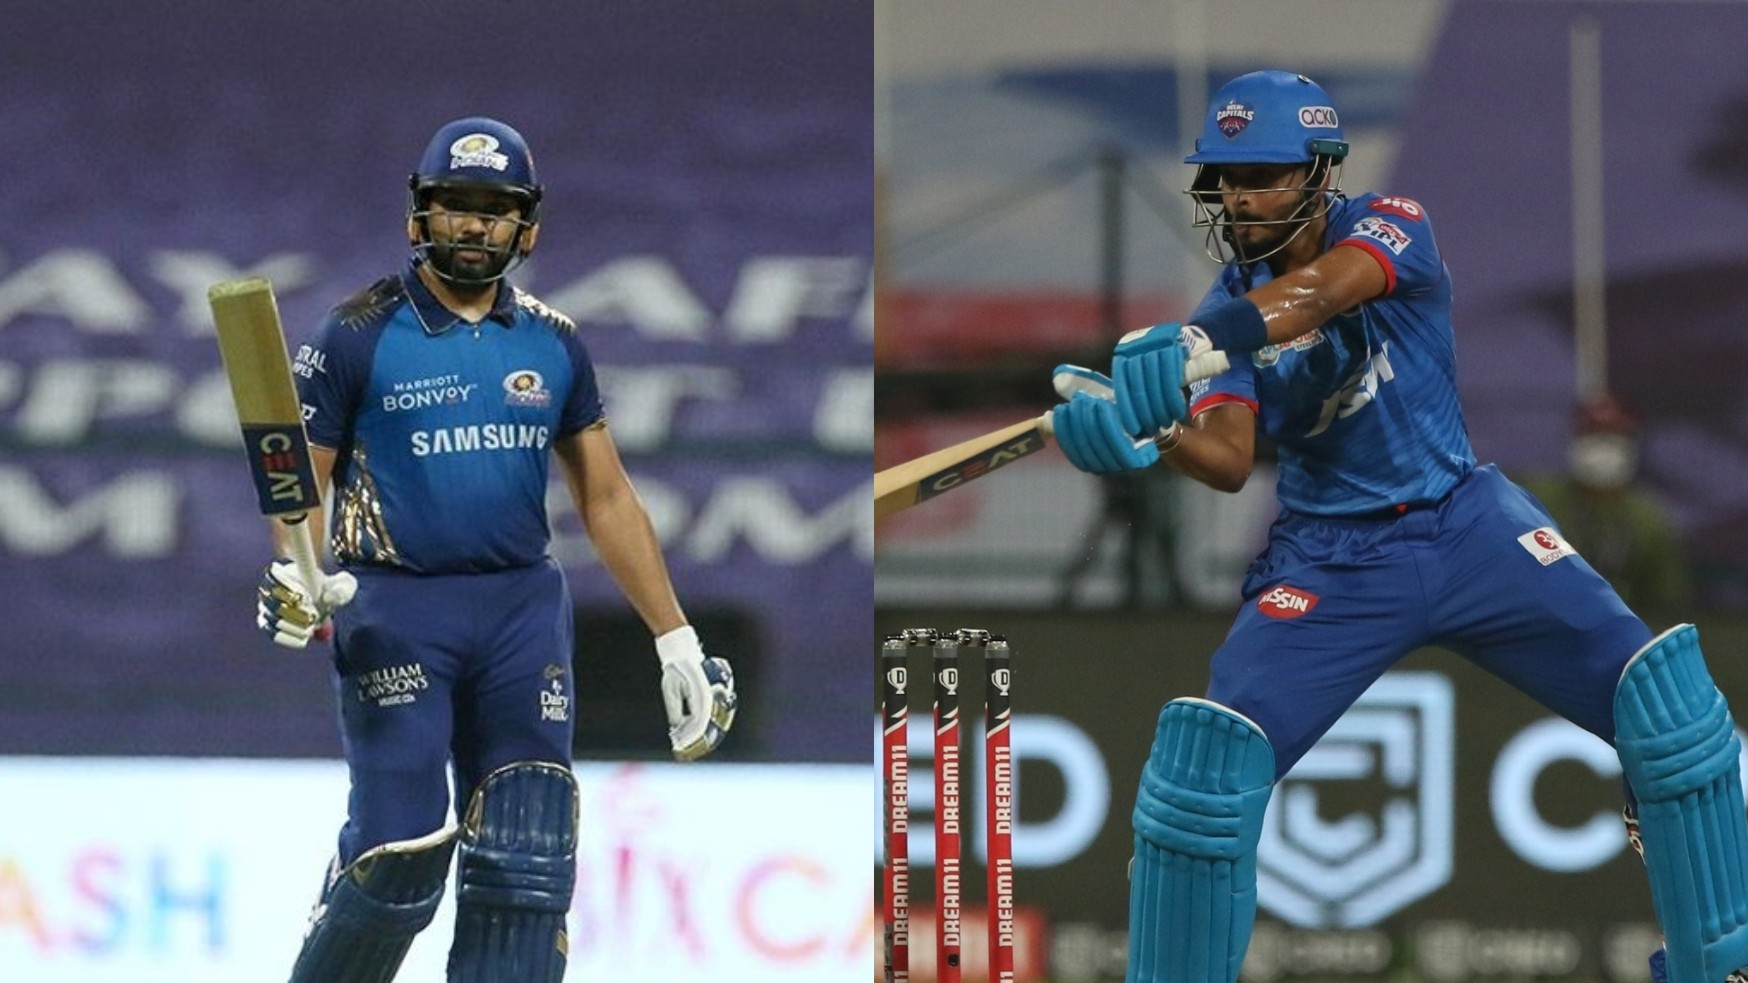 IPL 2020: Match 27, MI v DC – COC Predicted Playing XIs